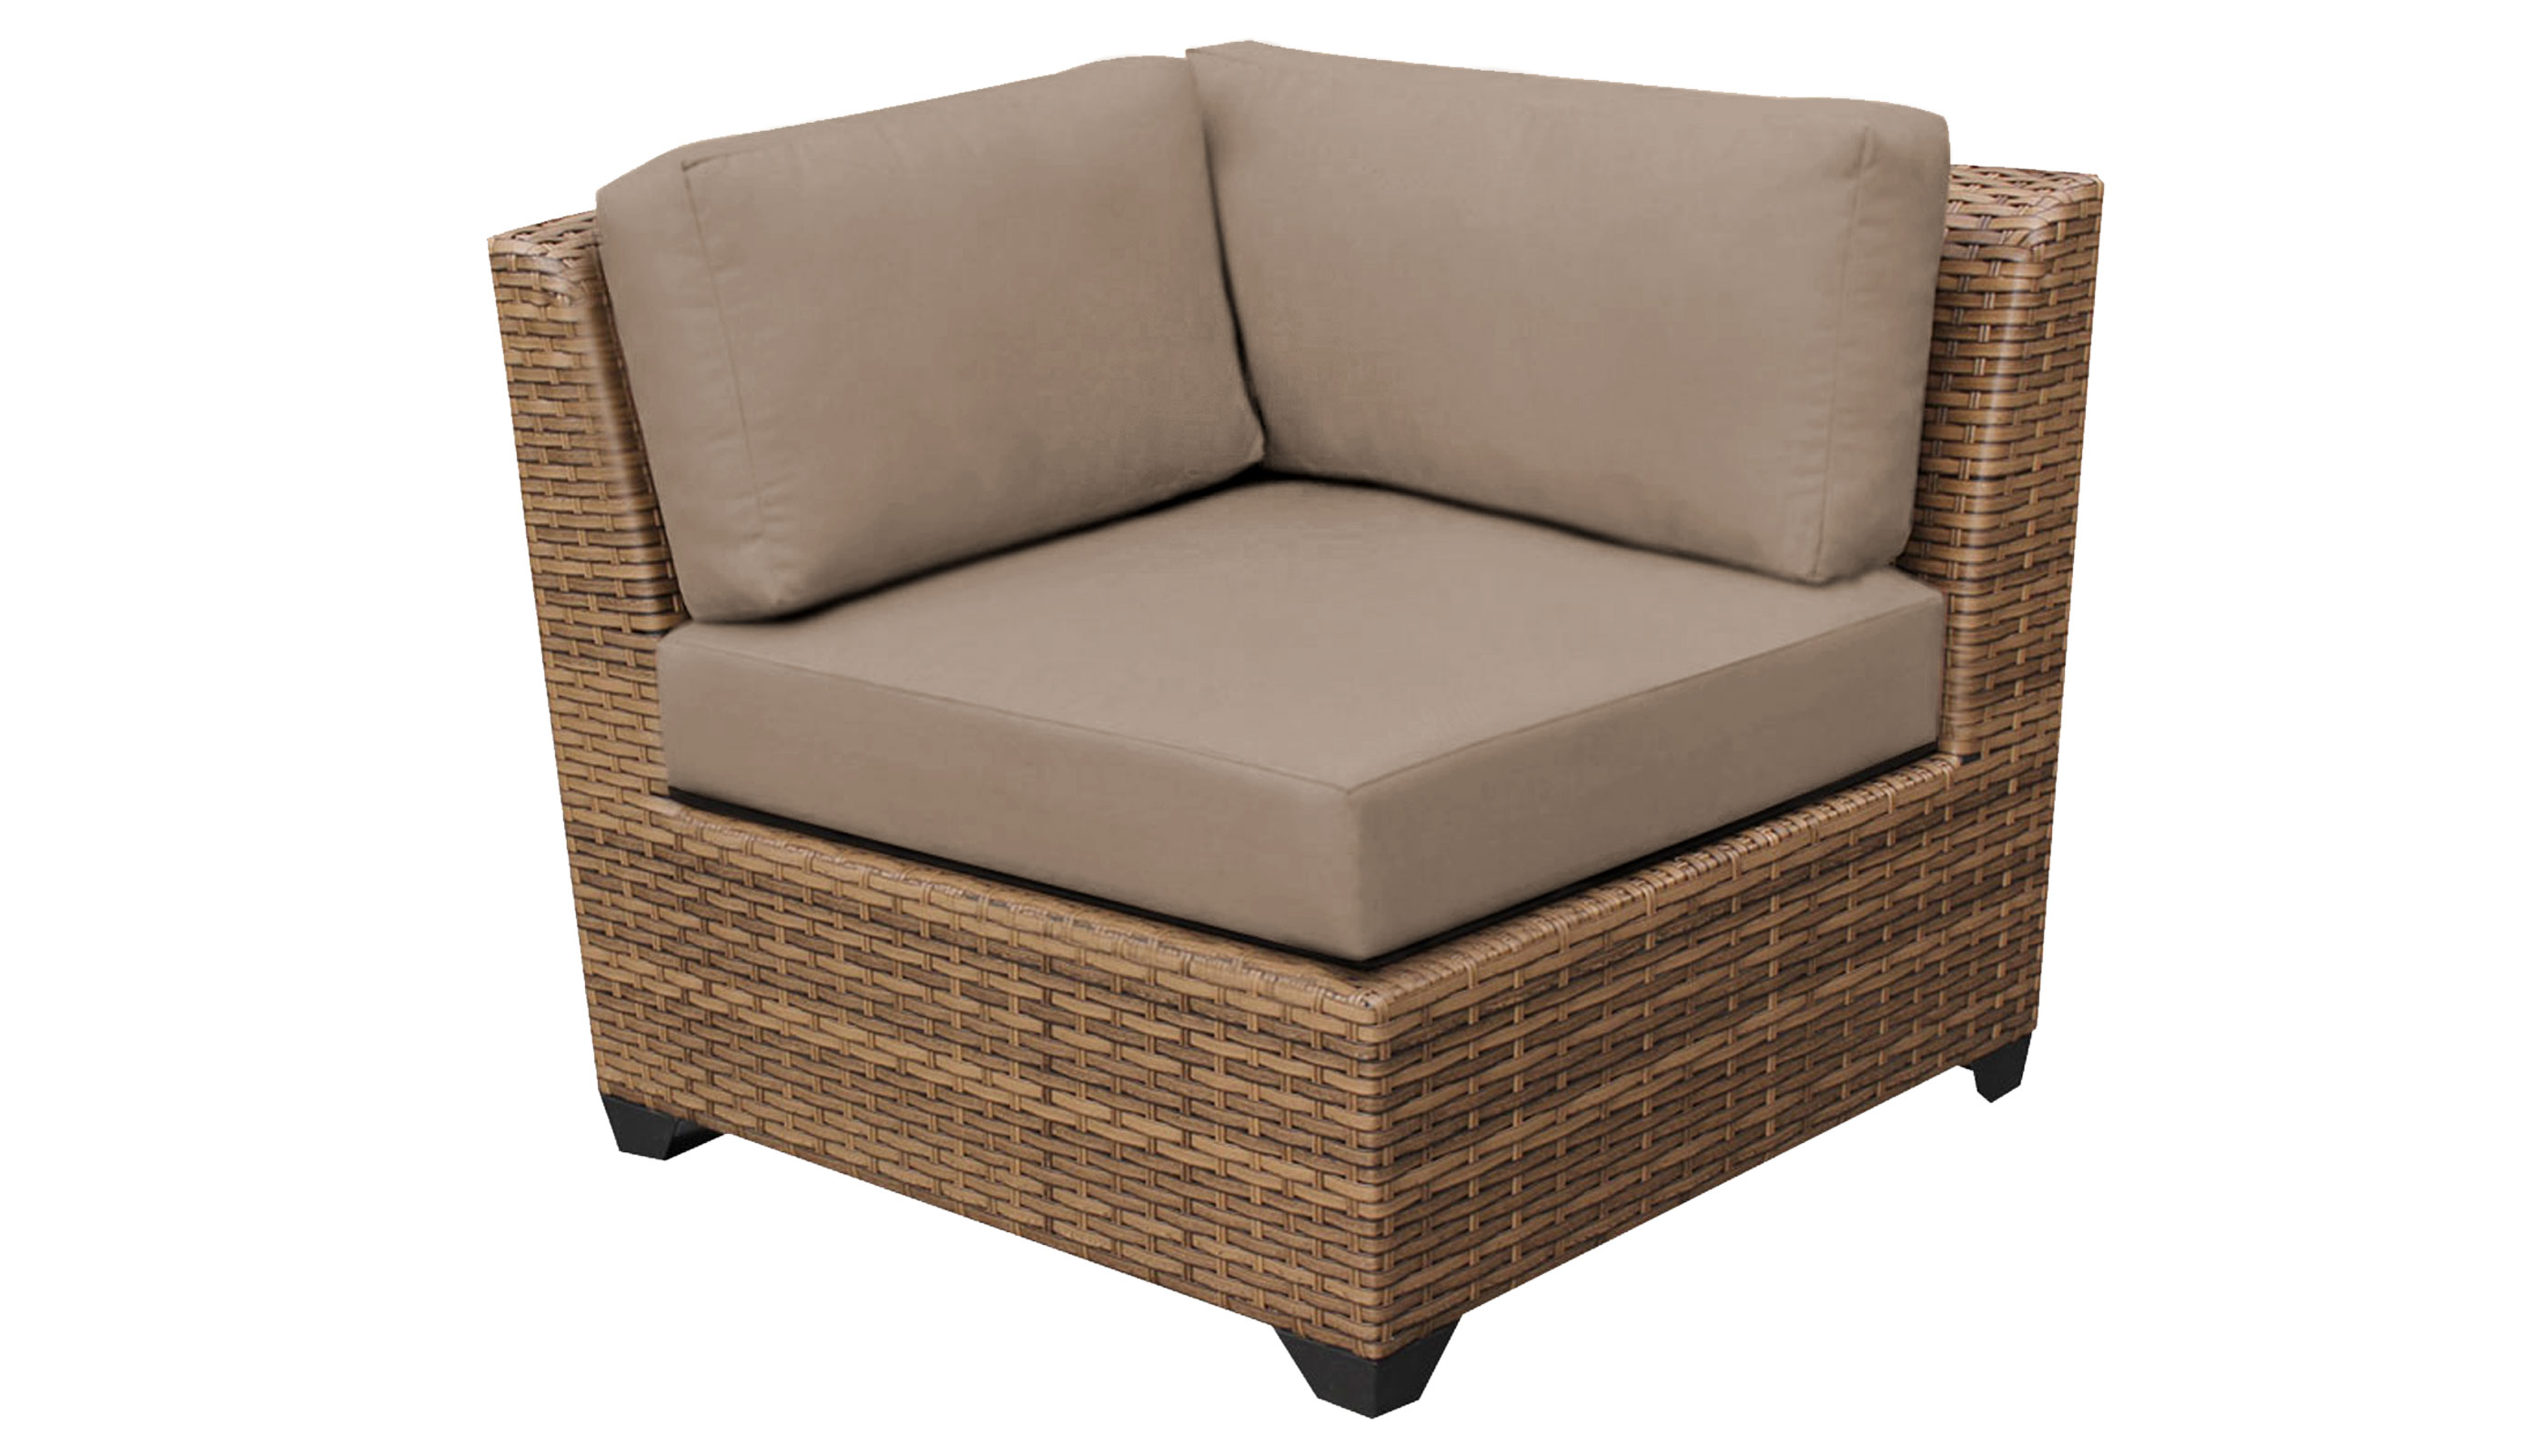 Tuscan 6 Piece Outdoor Wicker Patio Furniture Set 06o - Design Furnishings